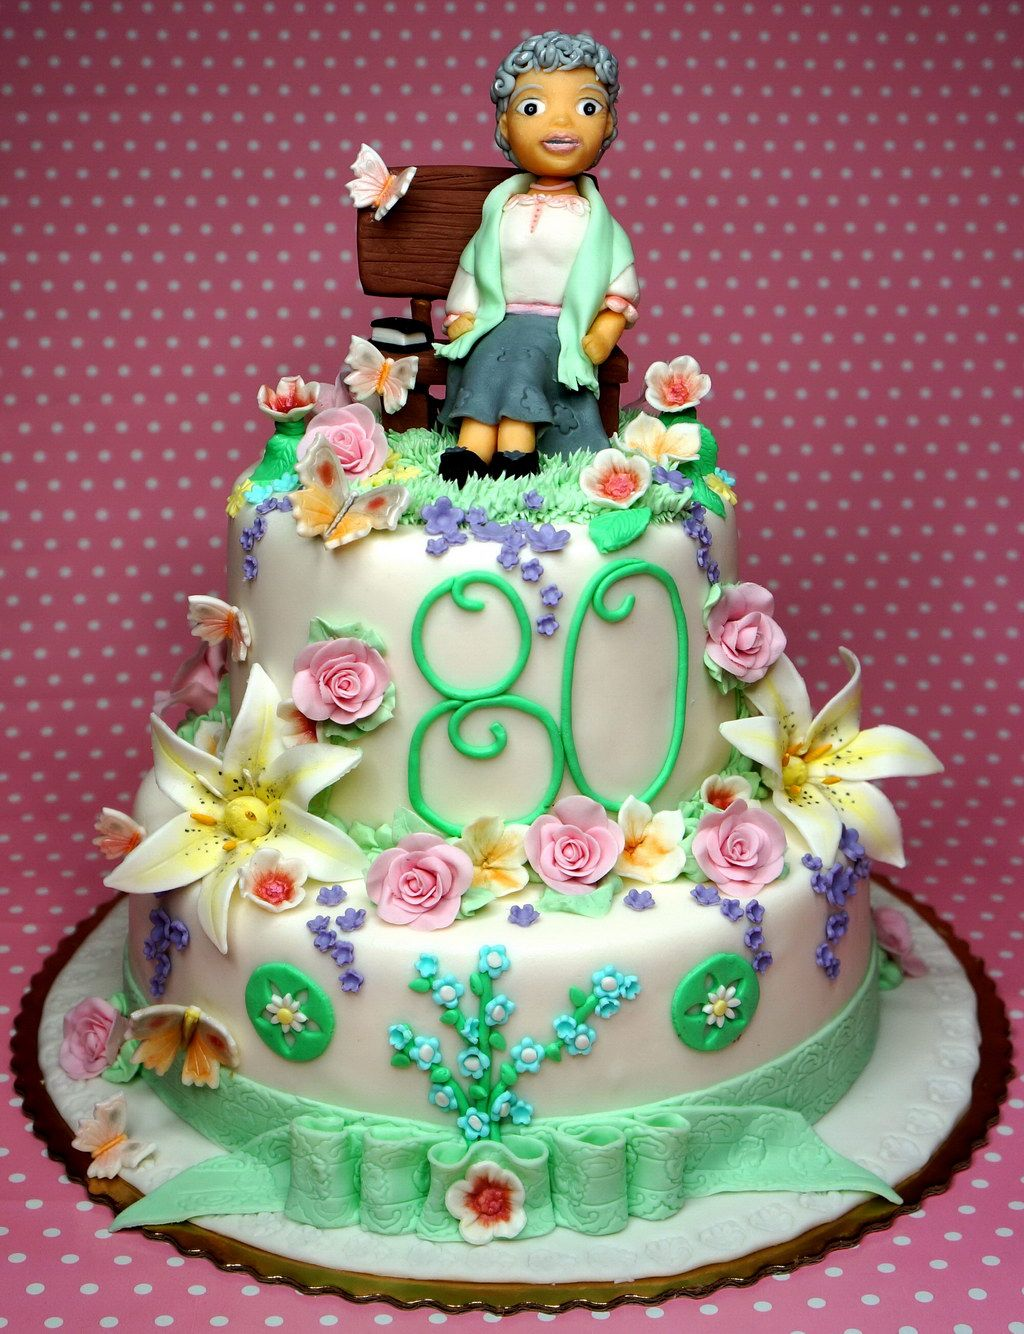 80th Birthday Cake for Grandmother http://www.pinkcakeland ...